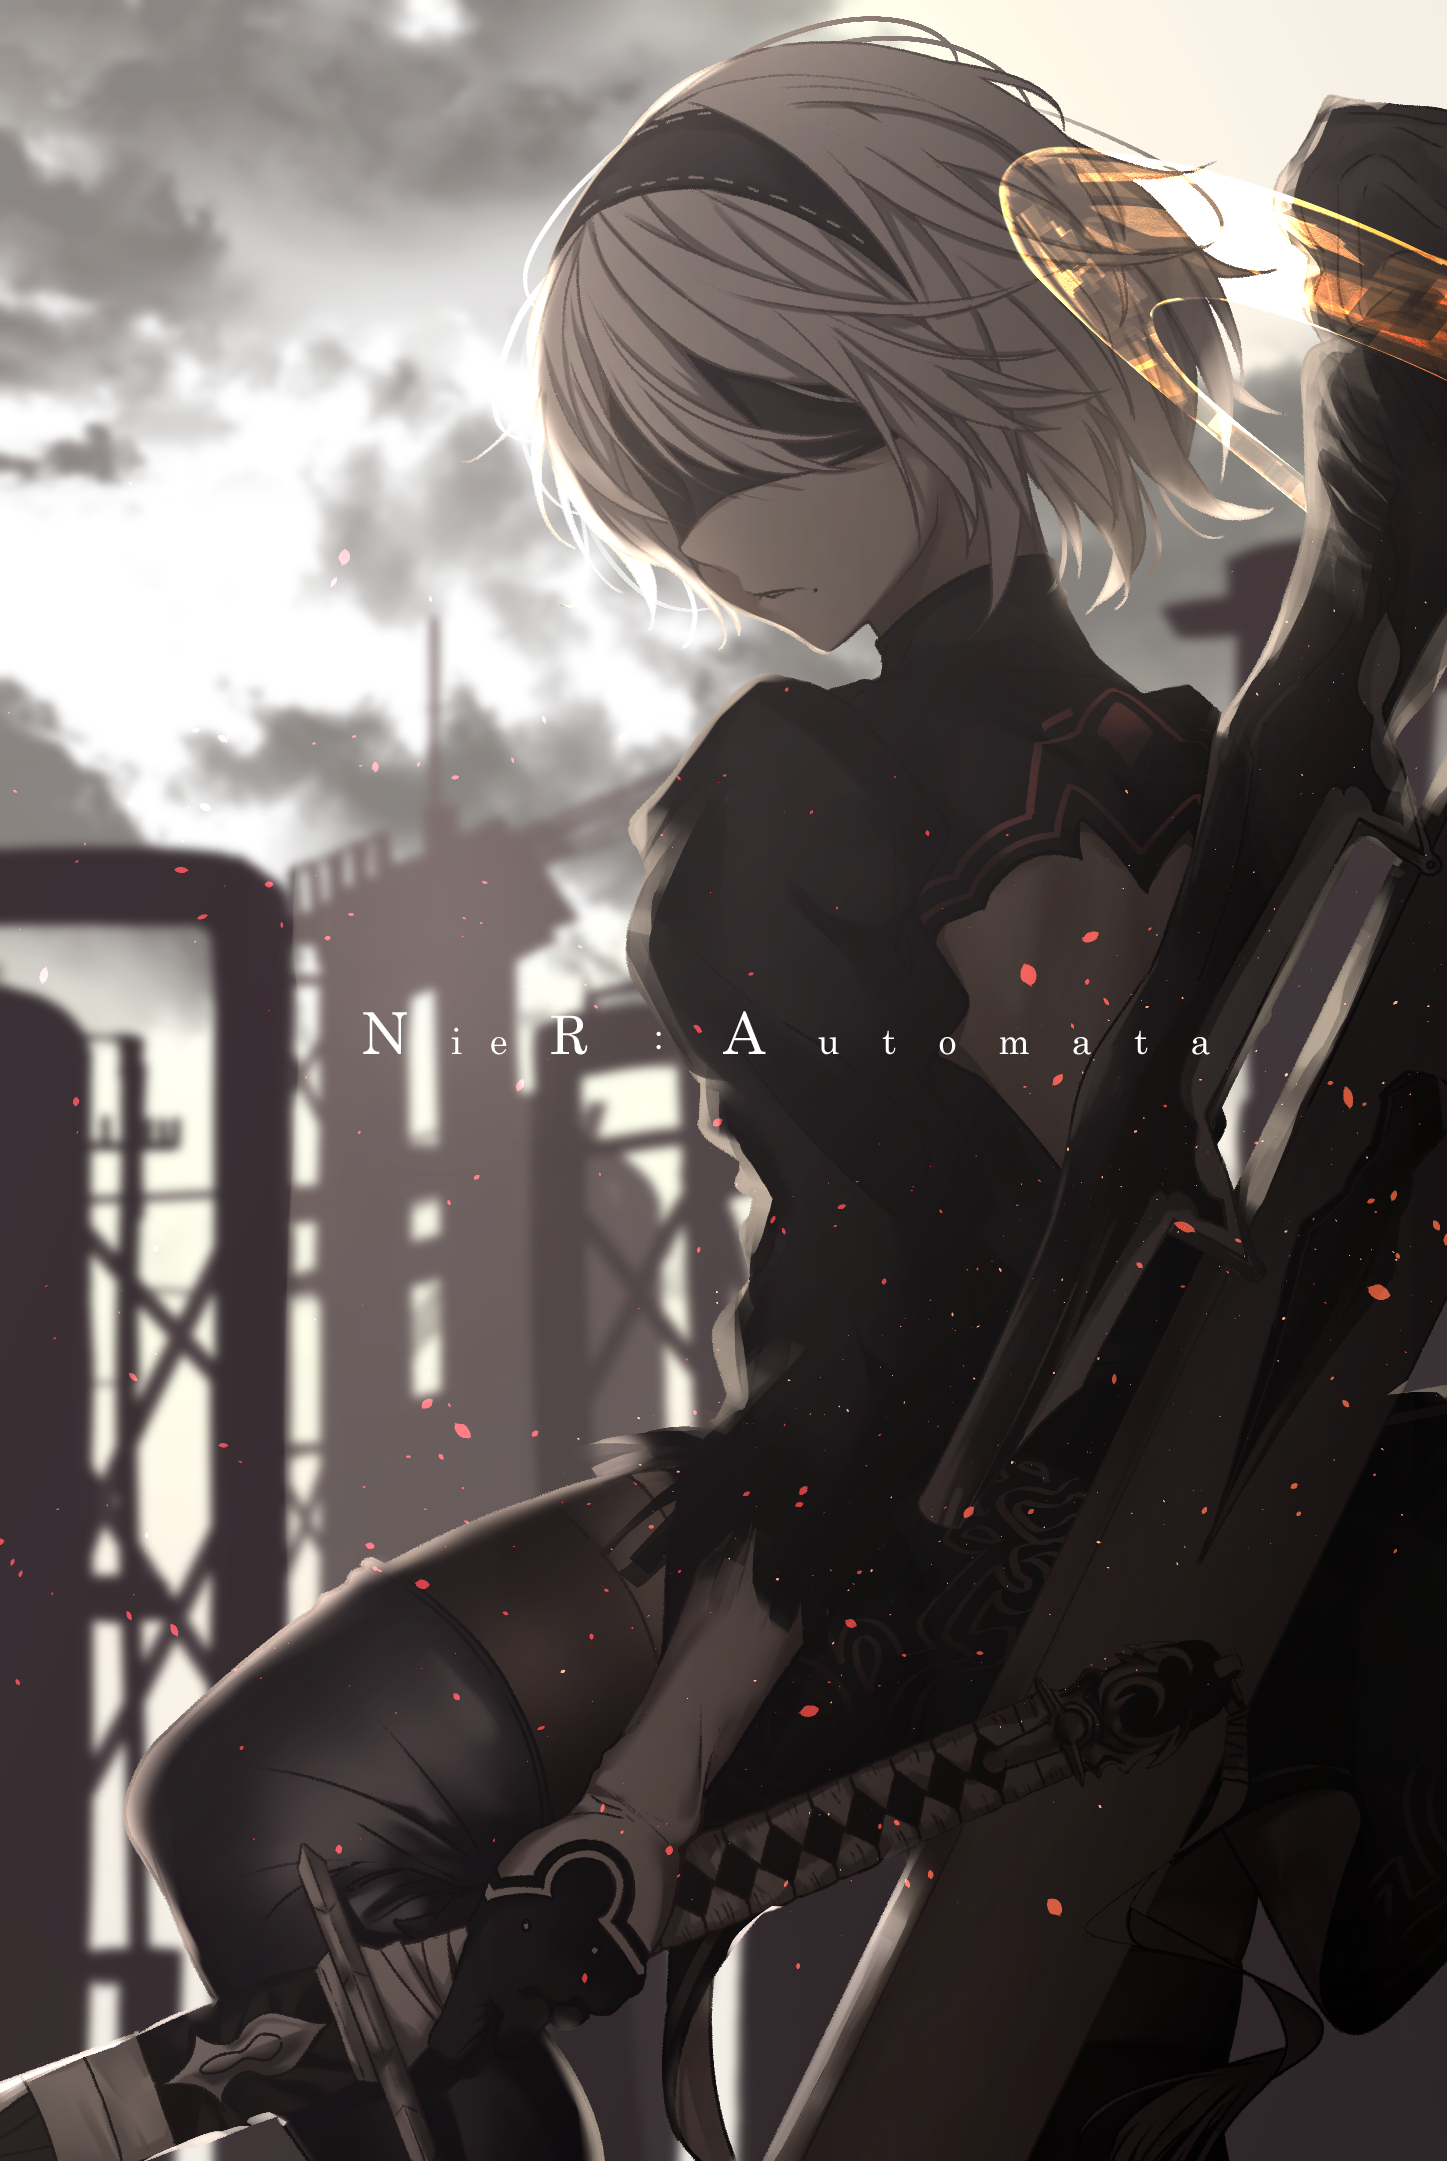 Nier Automata Mobile Wallpaper Zerochan Anime Image Board